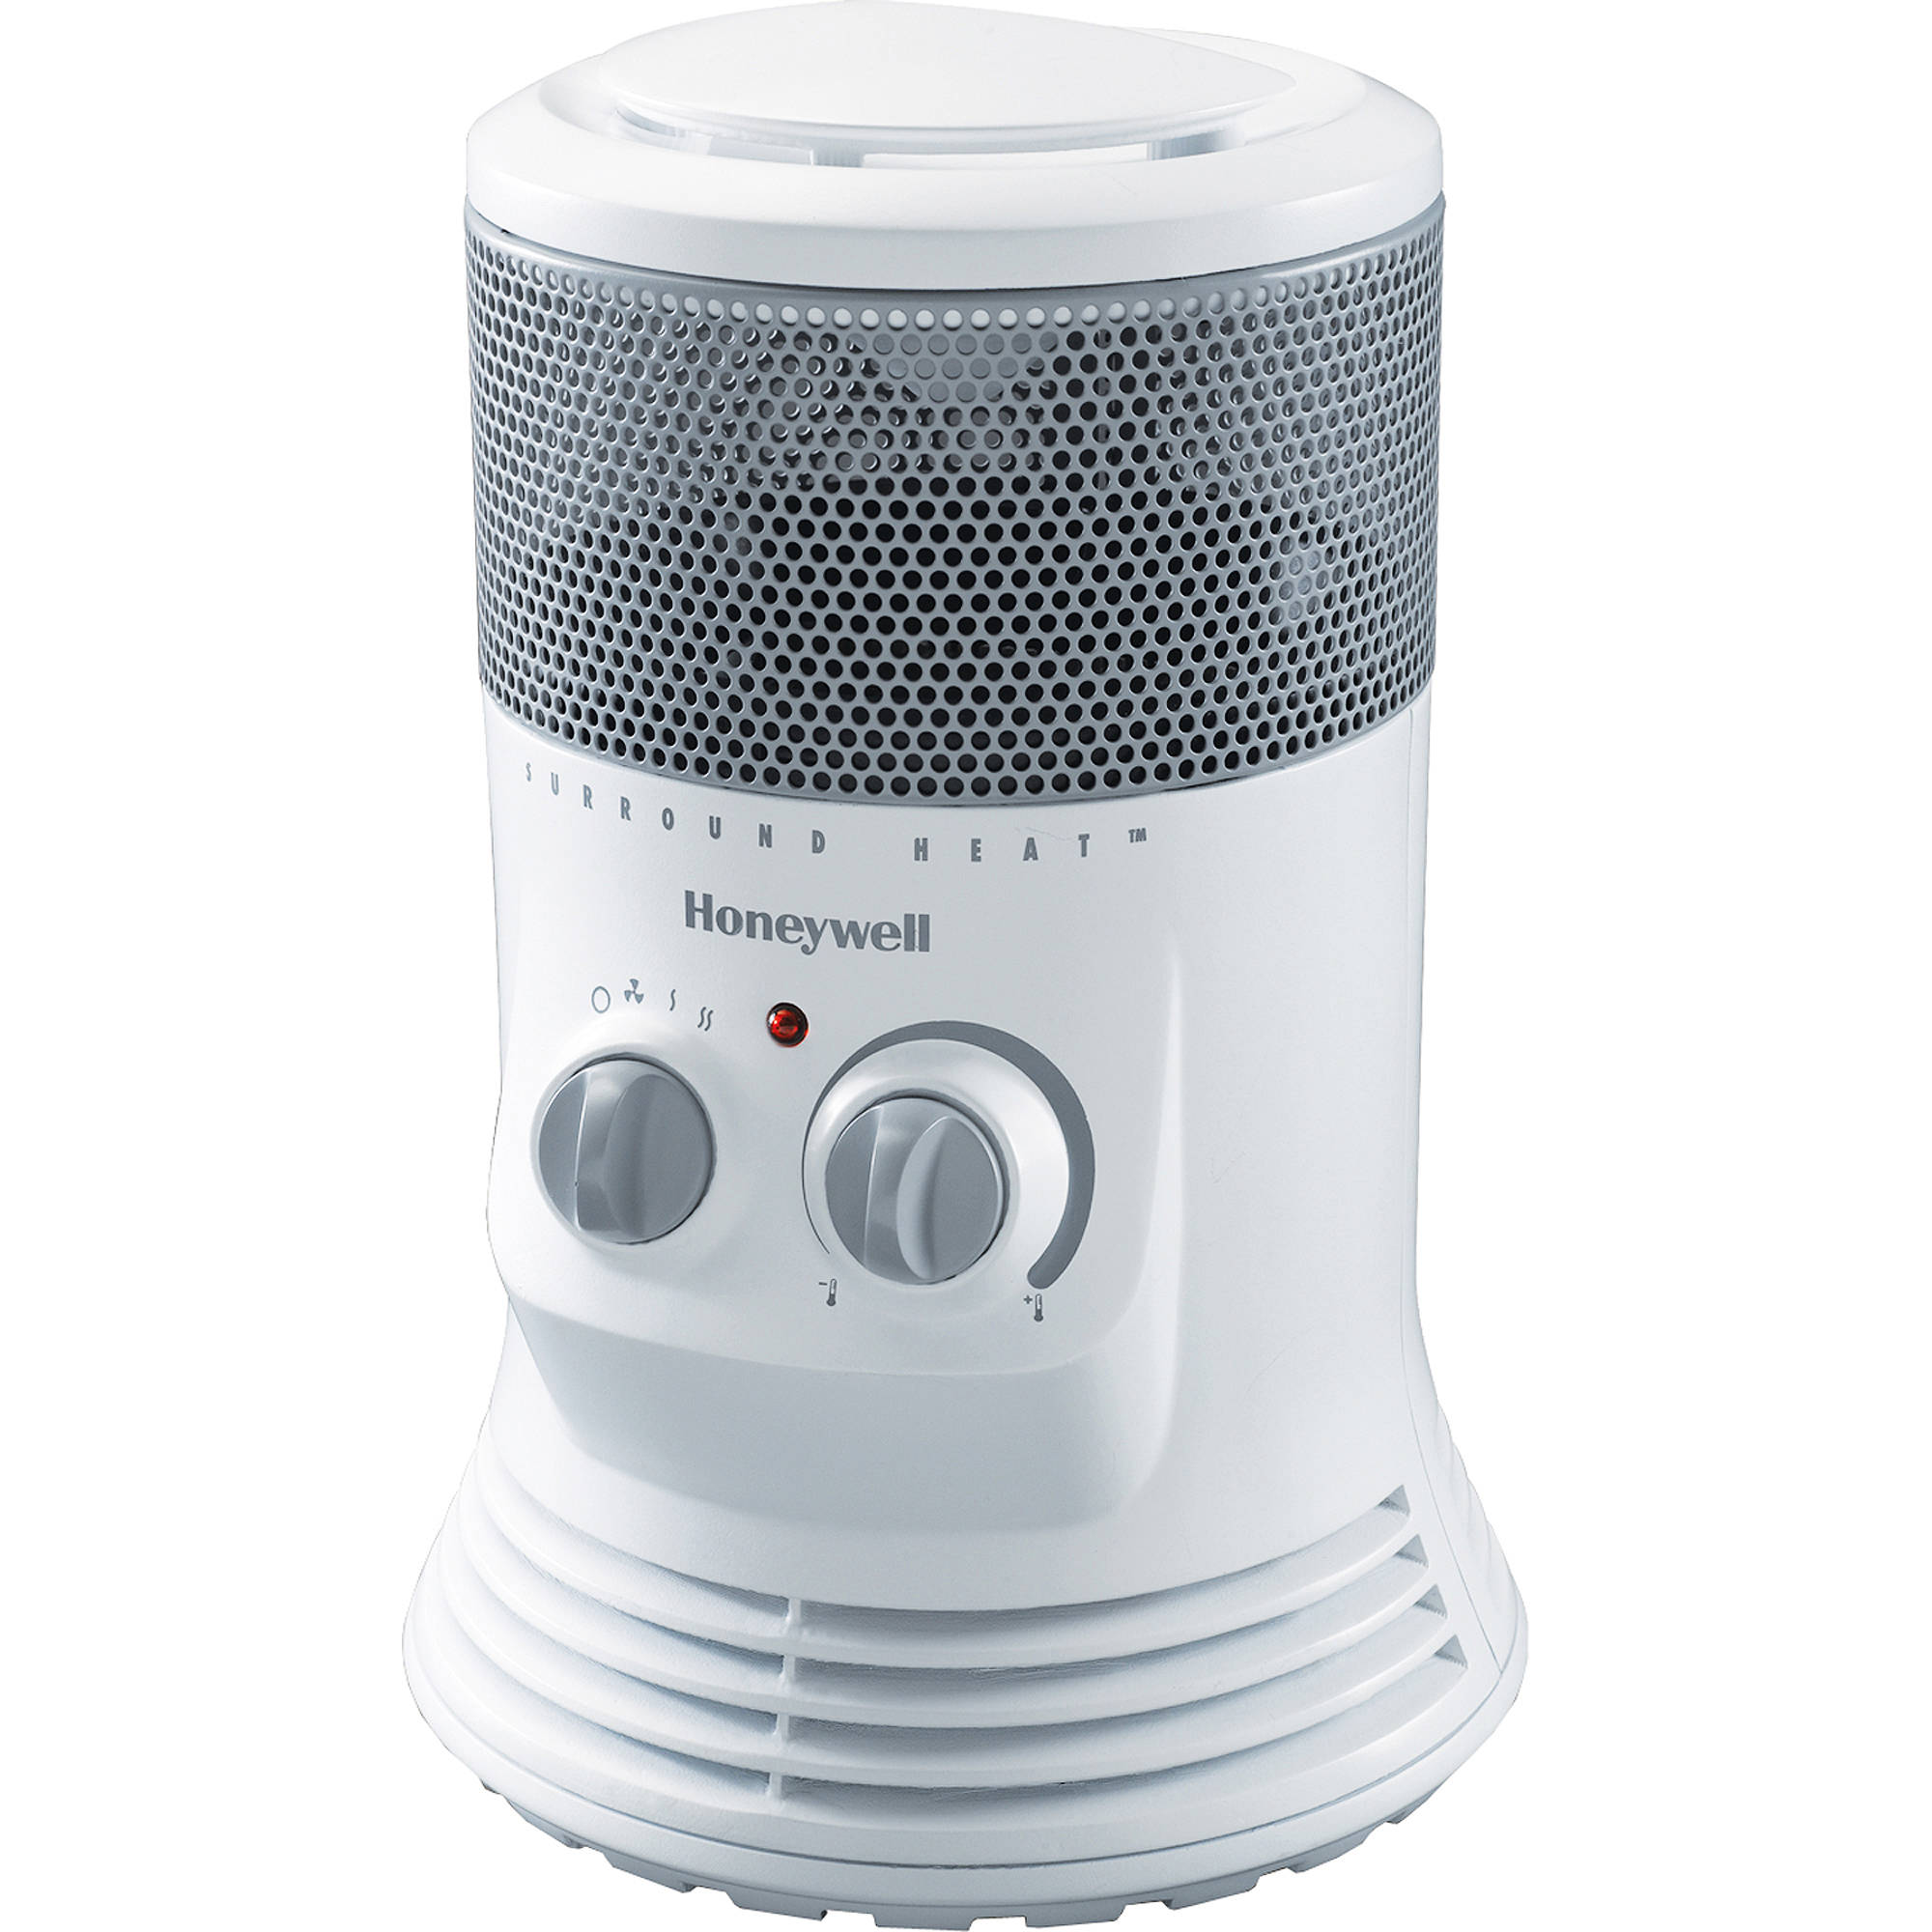 Honeywell Surround Heat Heater Hz